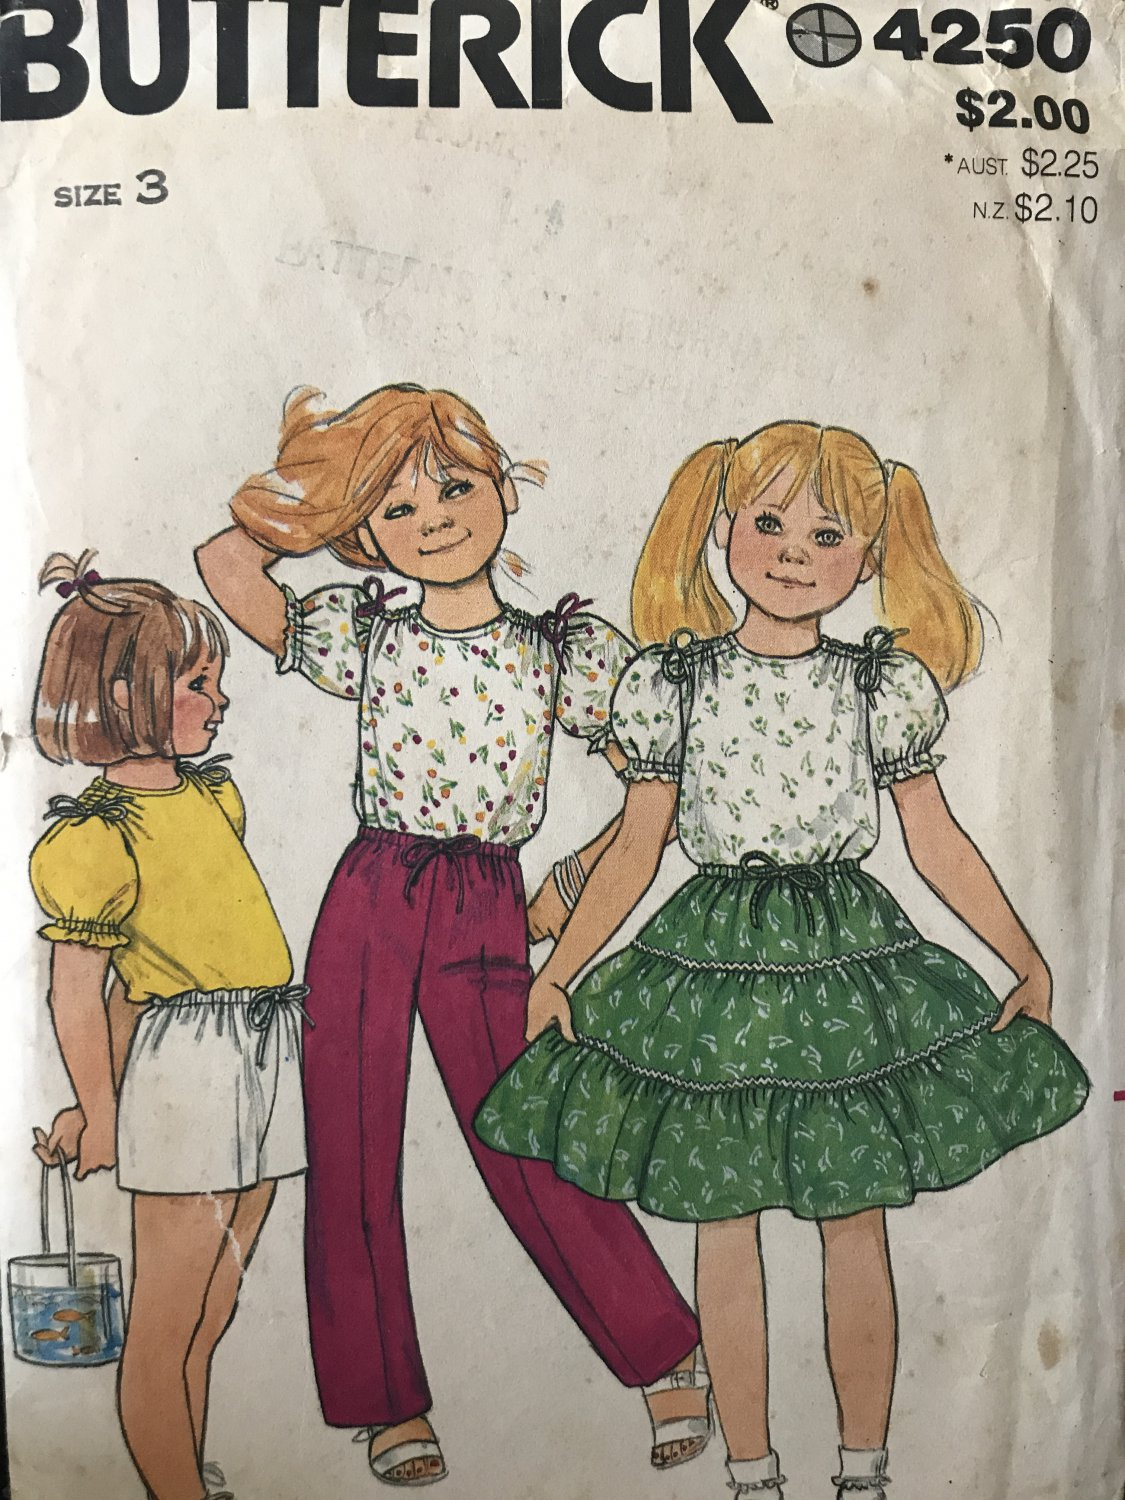 Butterick 4250 Children's top, skirt, shorts, and pants Sewing Pattern Size 3